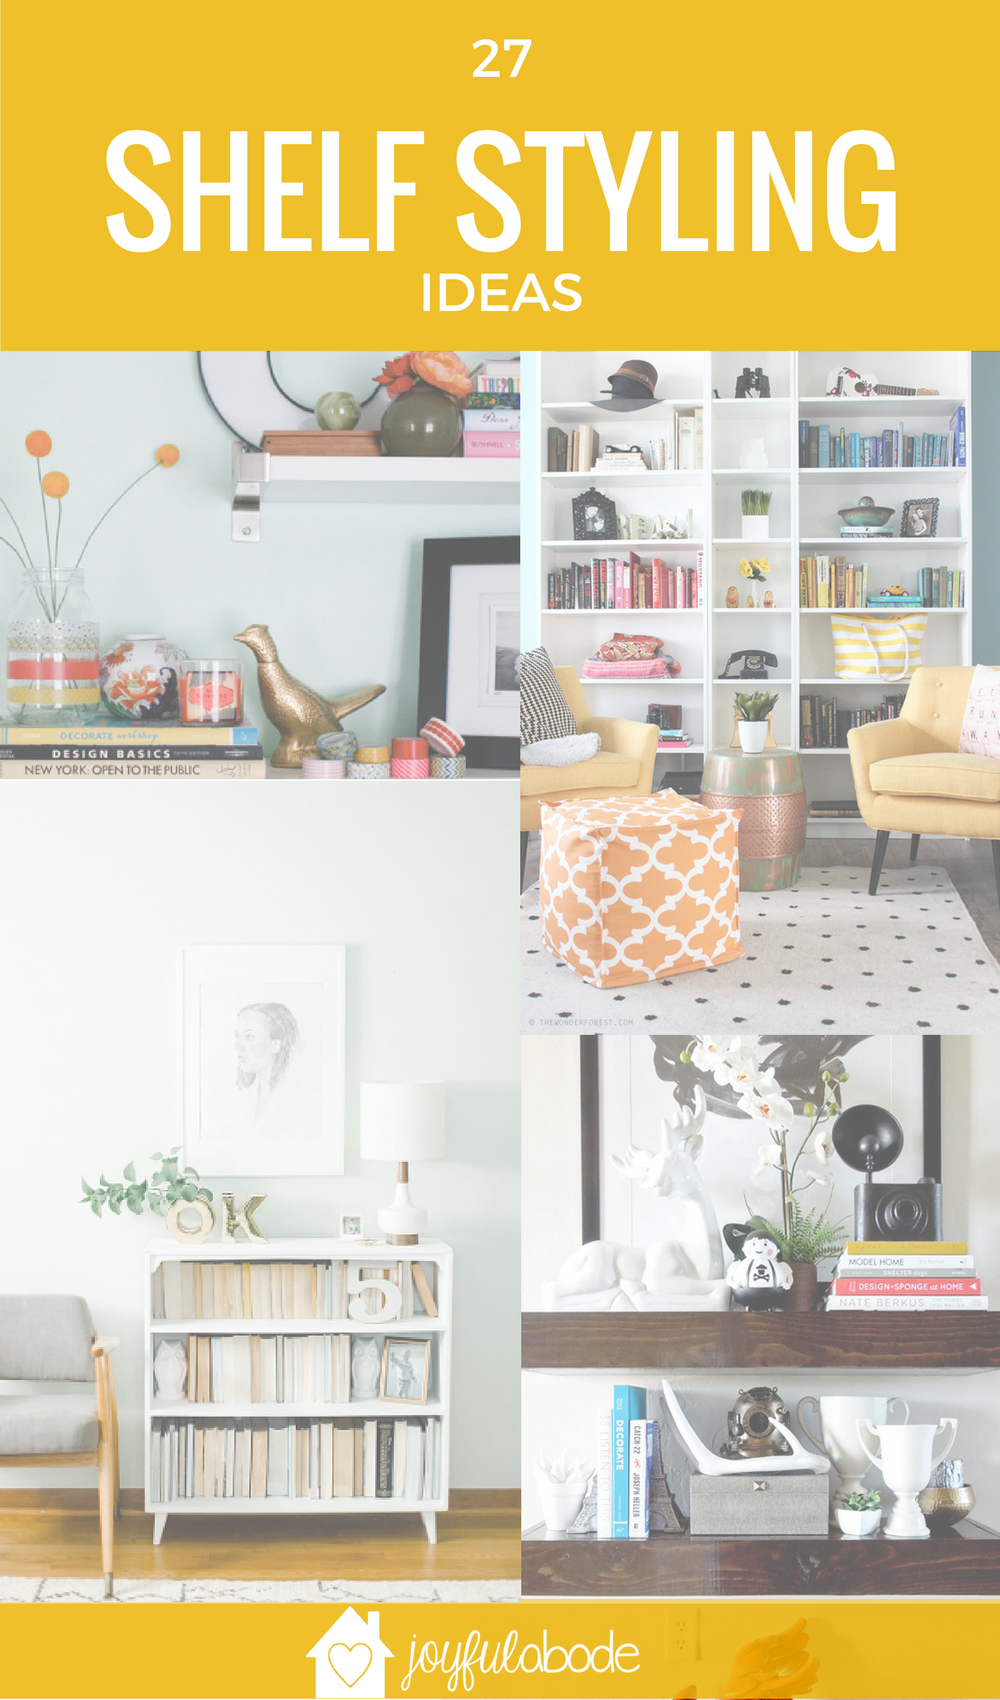 Want to know how to style a book shelf? Here are 27 ideas, tips, and inspiration posts to get you started with your bookcase styling. From tricks to make your books even more beautiful to tips about organizing your trinkets and decor, you're going to love this post!